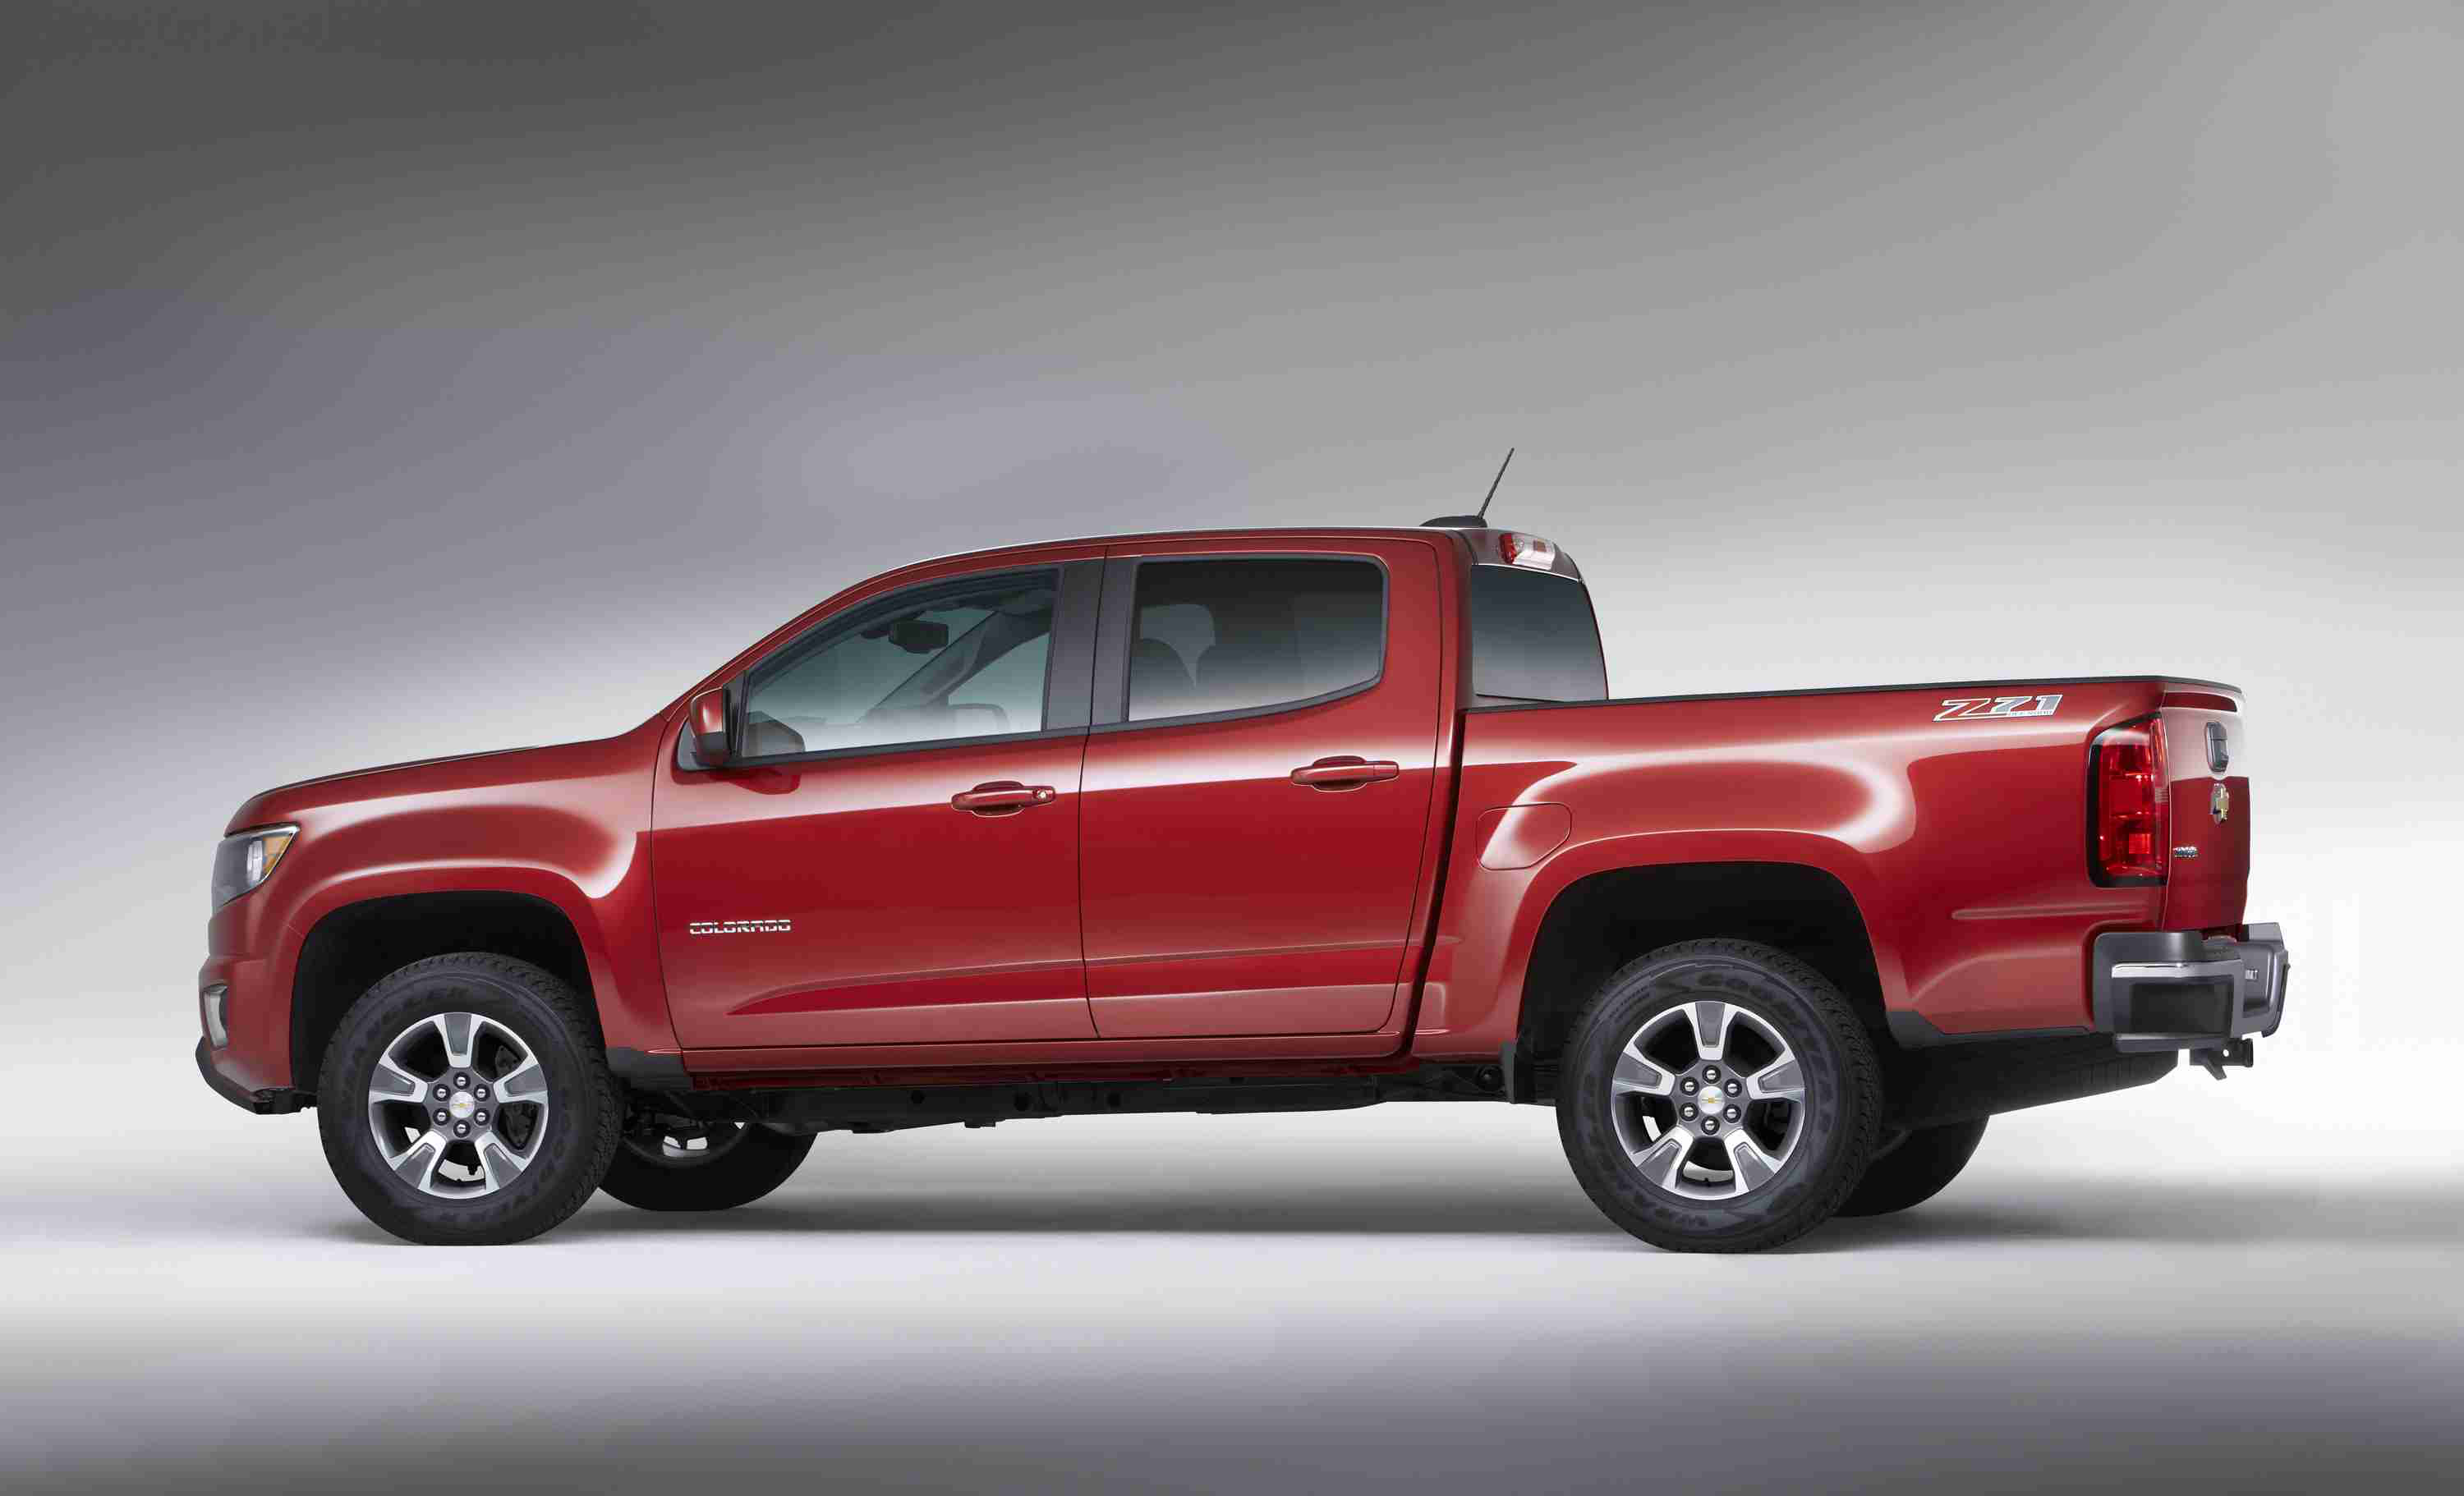 2017 Chevy Colorado offers new V6 8 speed transmission